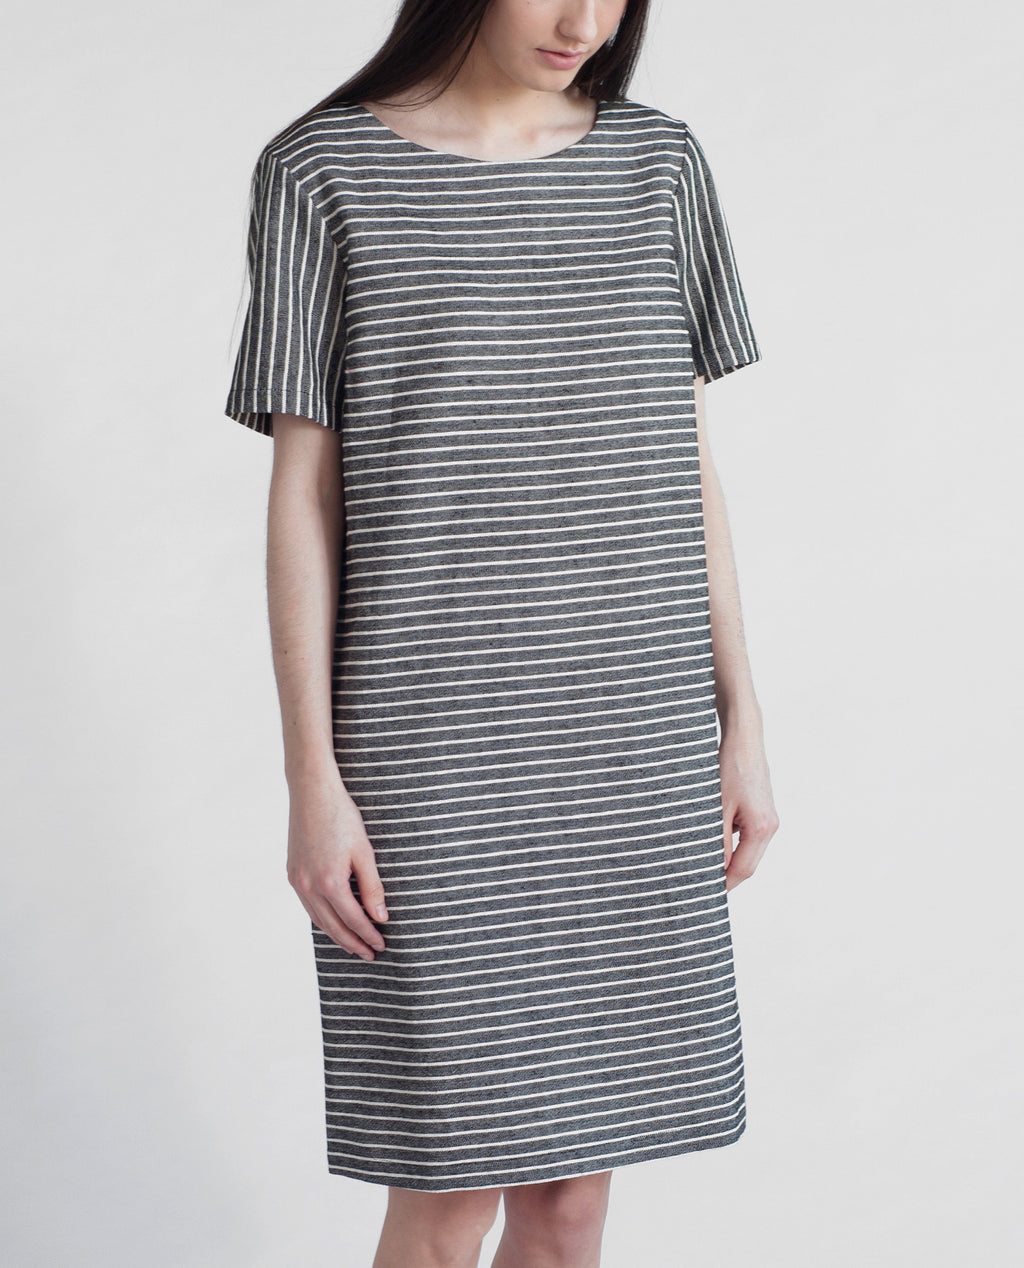 CLEMENTINE Cotton And Linen Shift Dress In Black & White Stripe